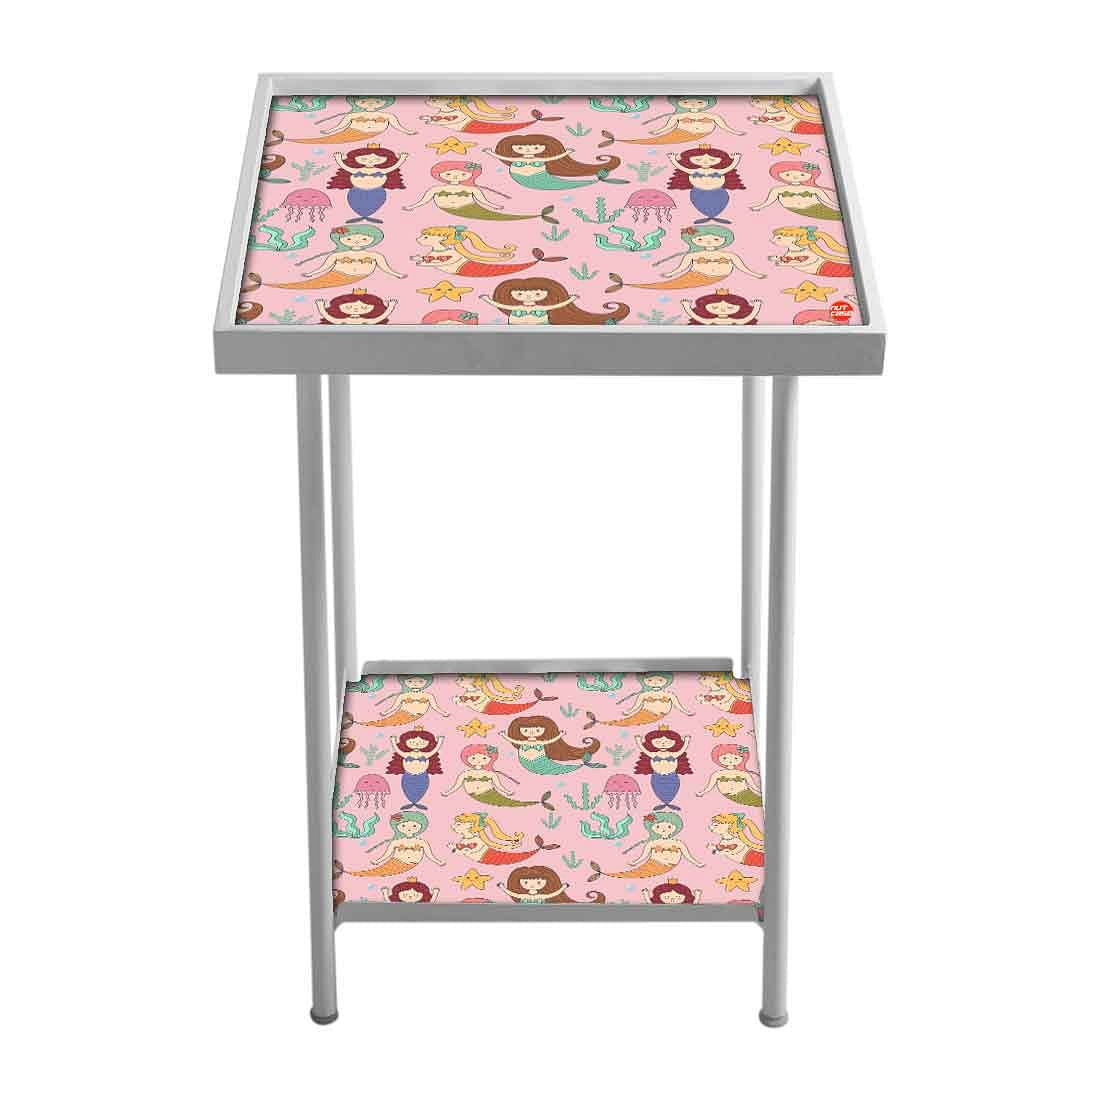 Patio Table For Balcony Outdoor - Jellyfish Pink